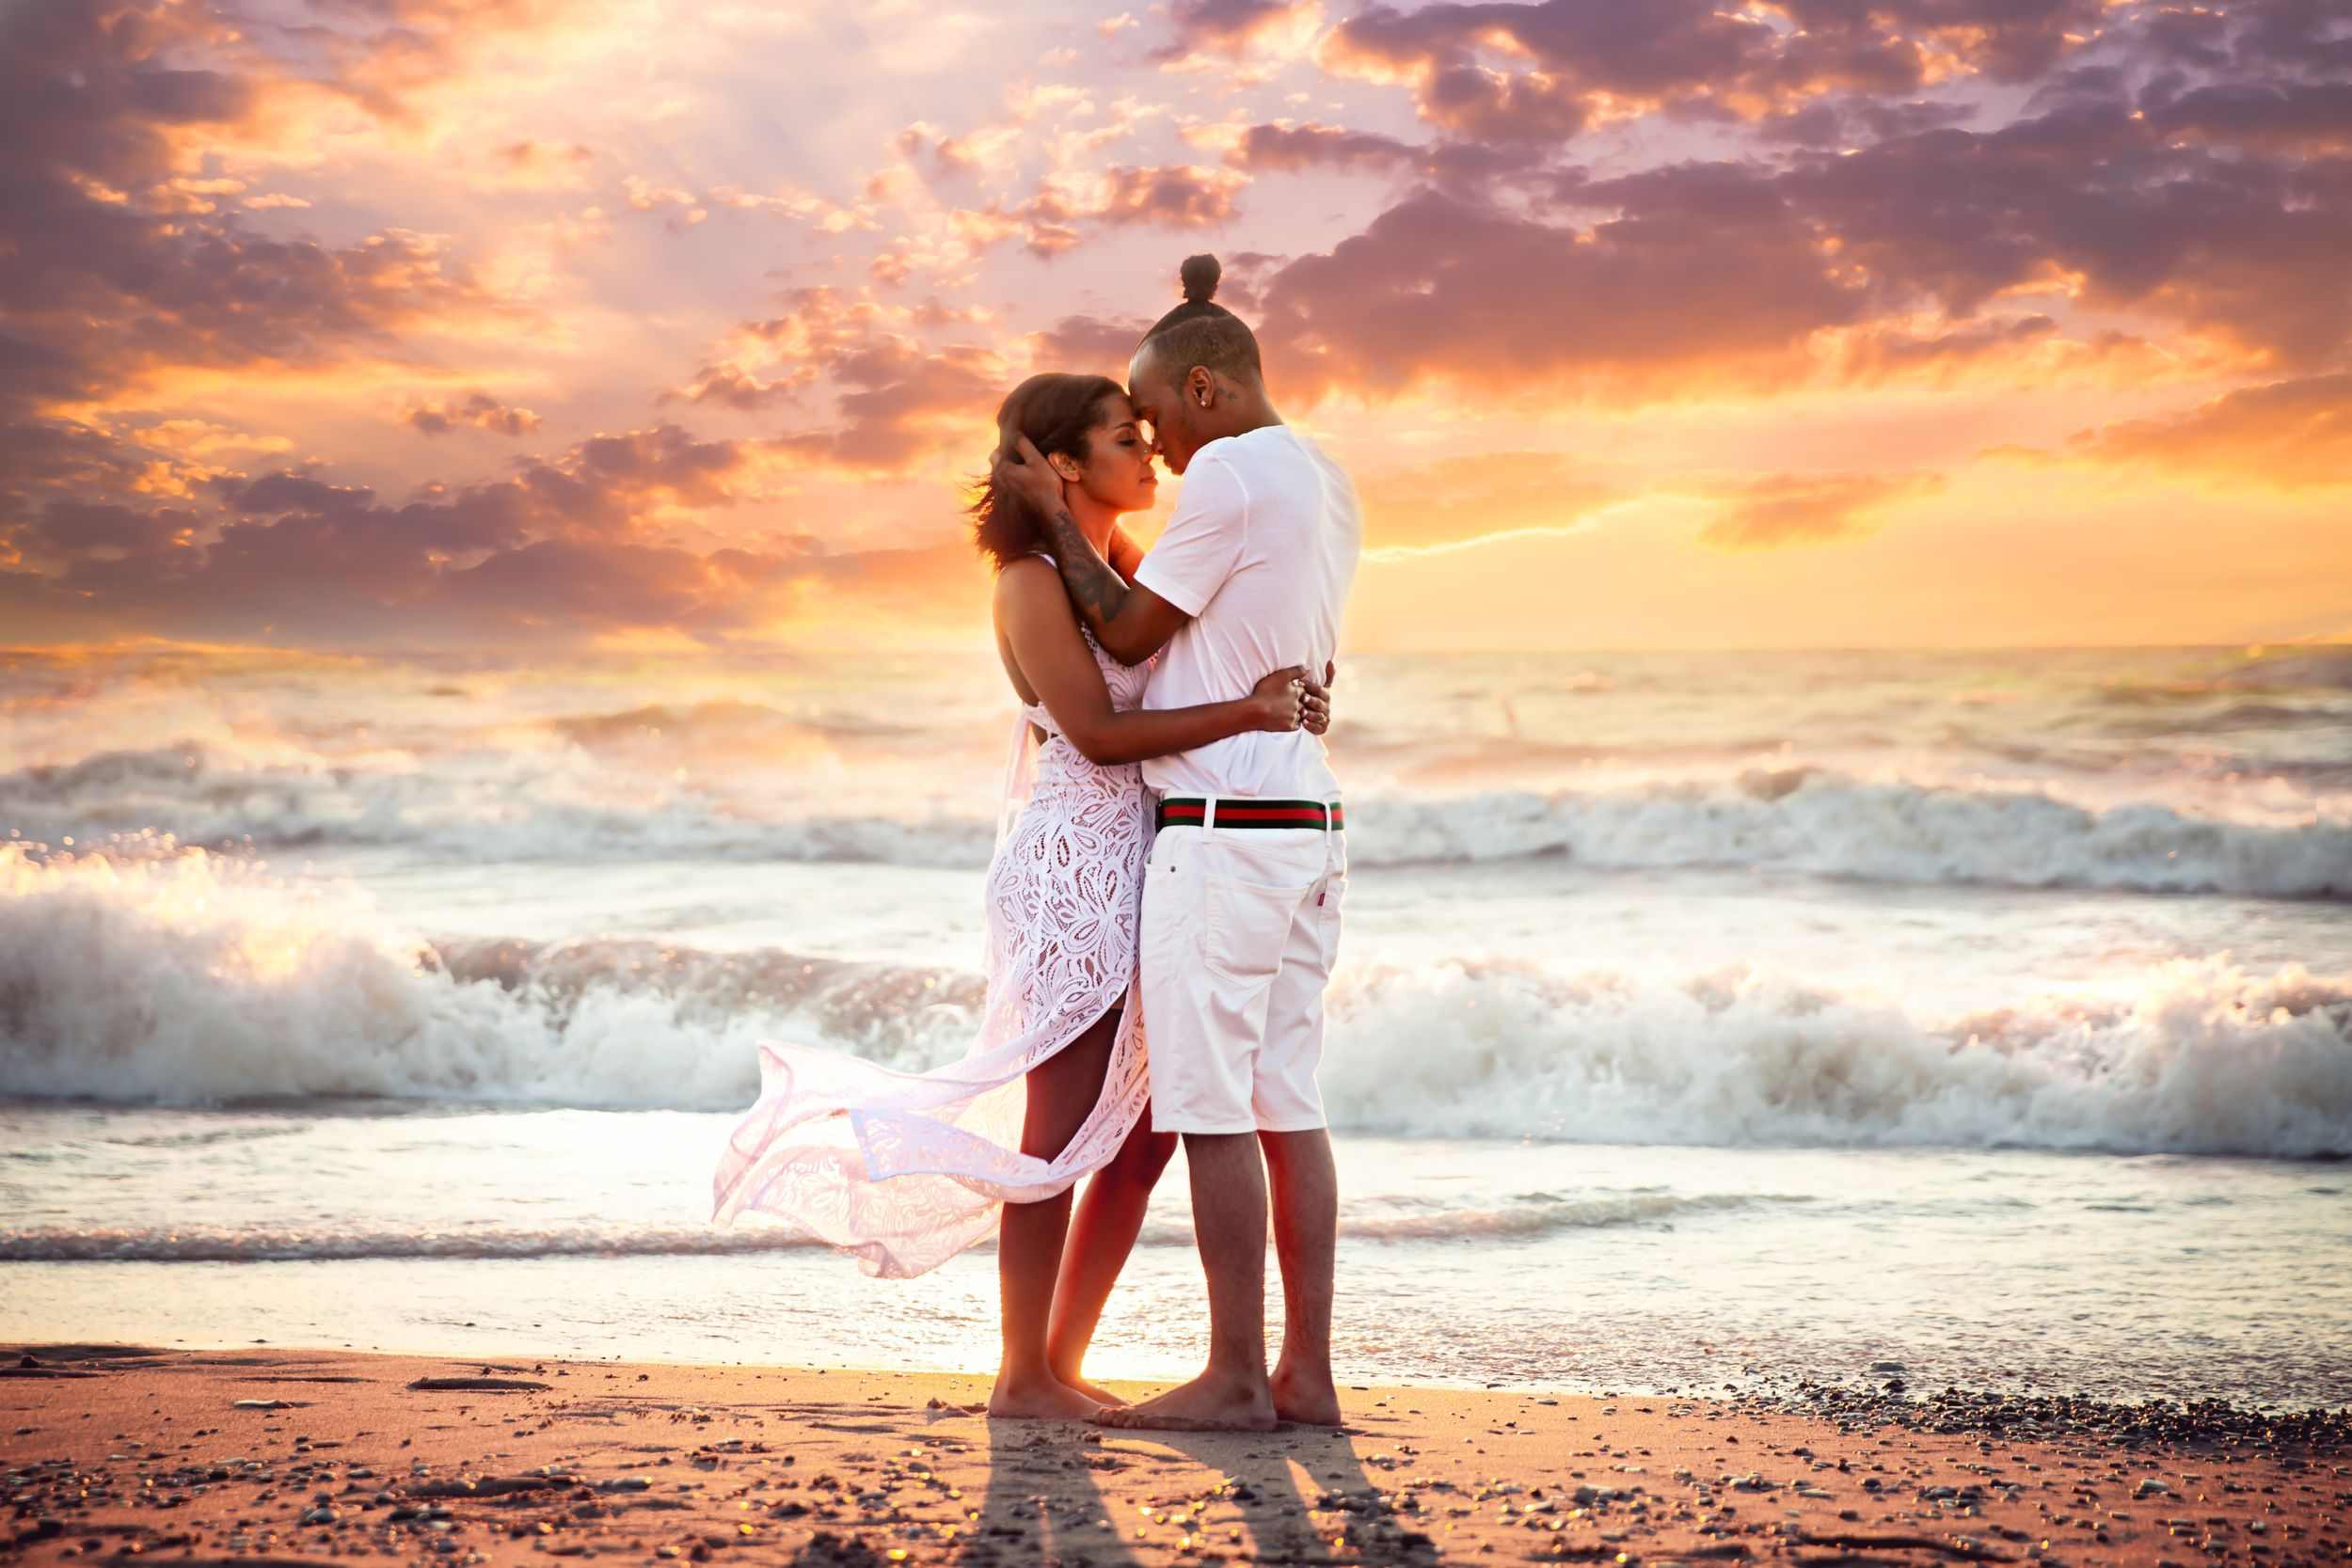 Grand Bend Beach Sunset Engagement Photography by Shawn Van Daele